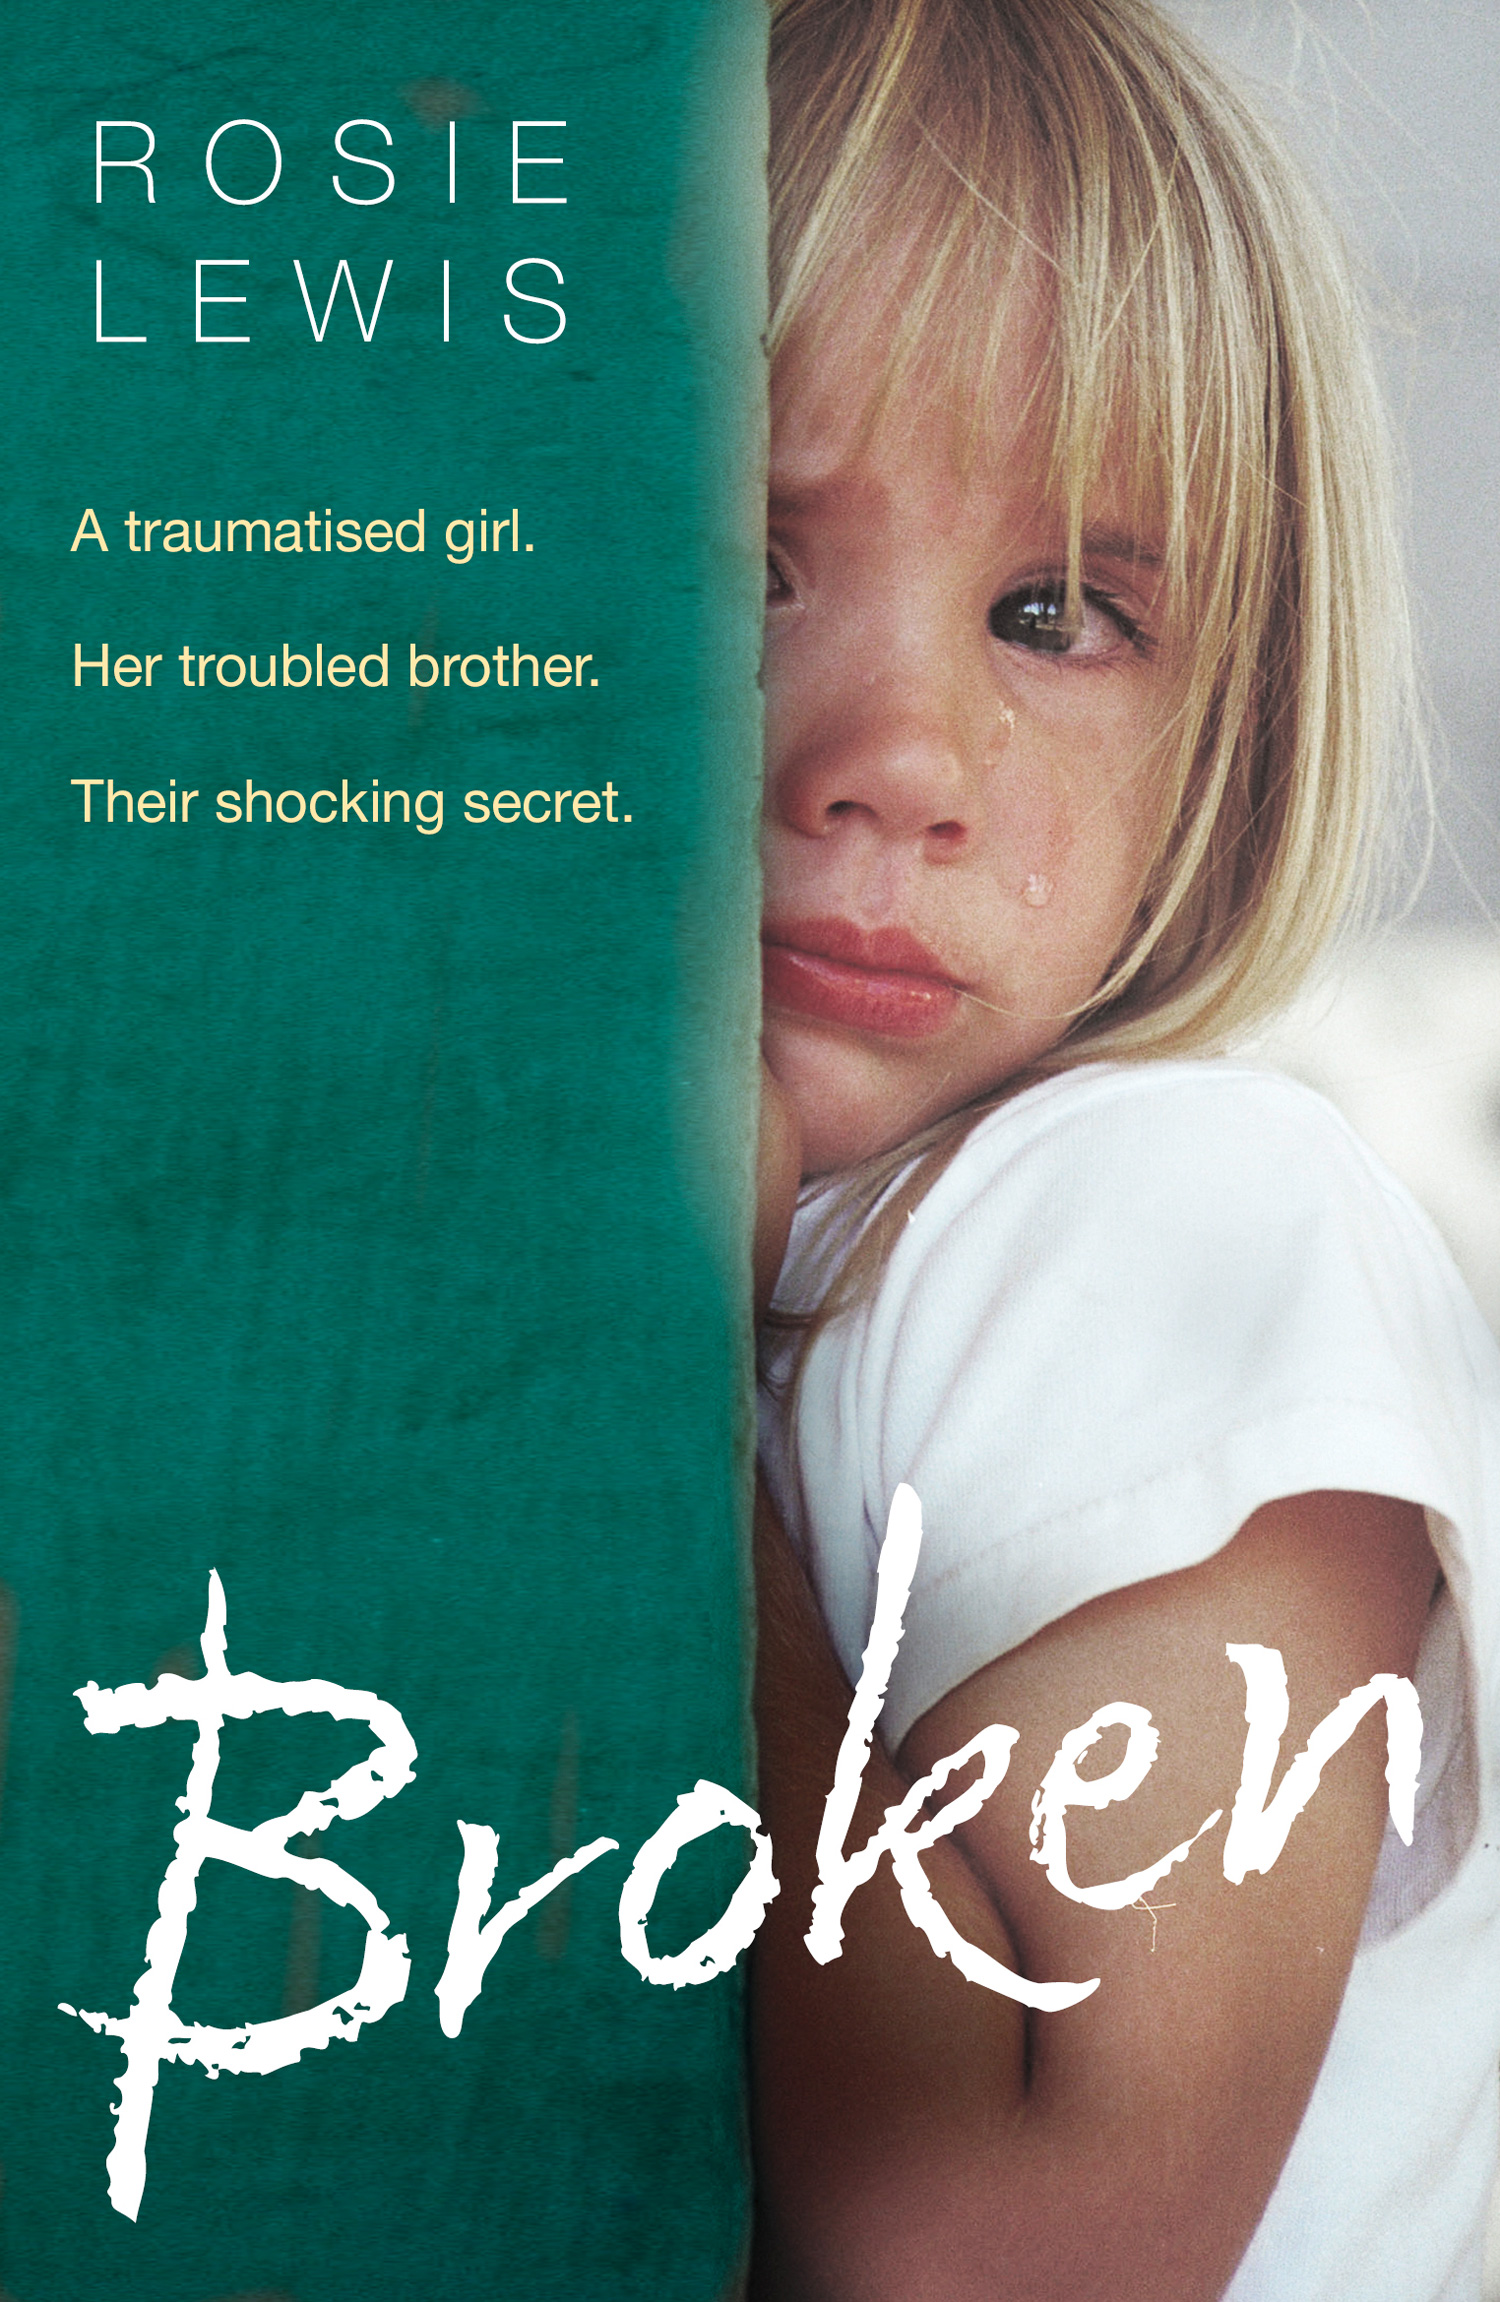 Rosie Lewis Broken: A traumatised girl. Her troubled brother. Their shocking secret.